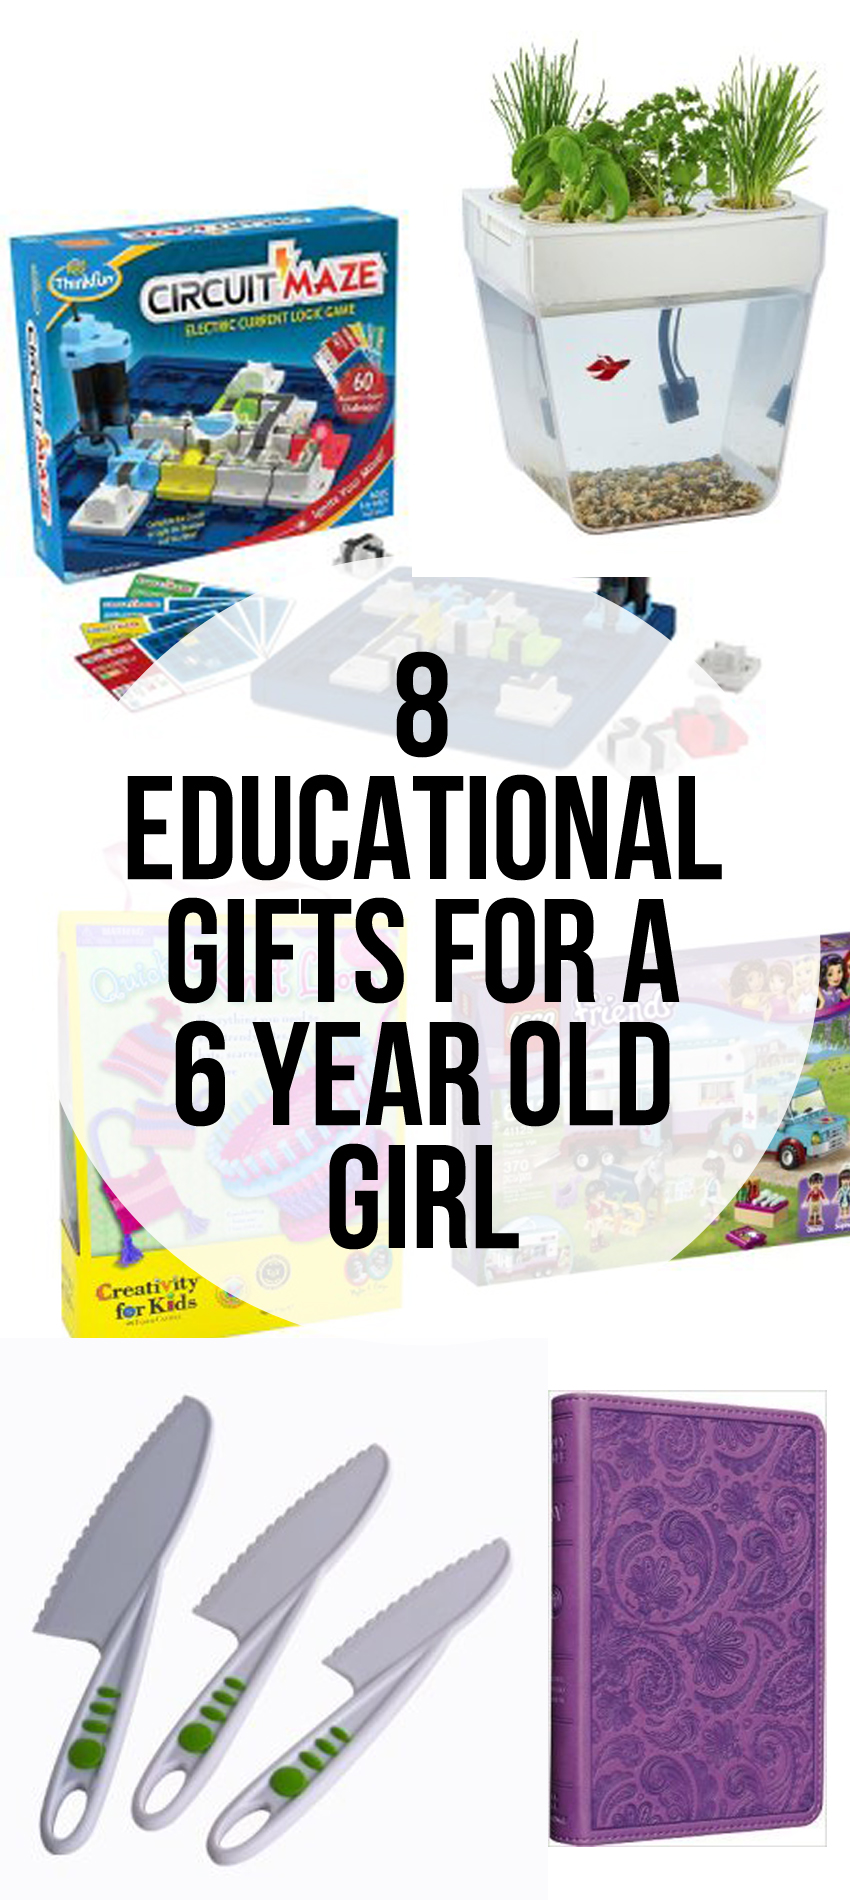 Gift Guide - 8 Educational Gifts to get for a 6 Year Old Girl